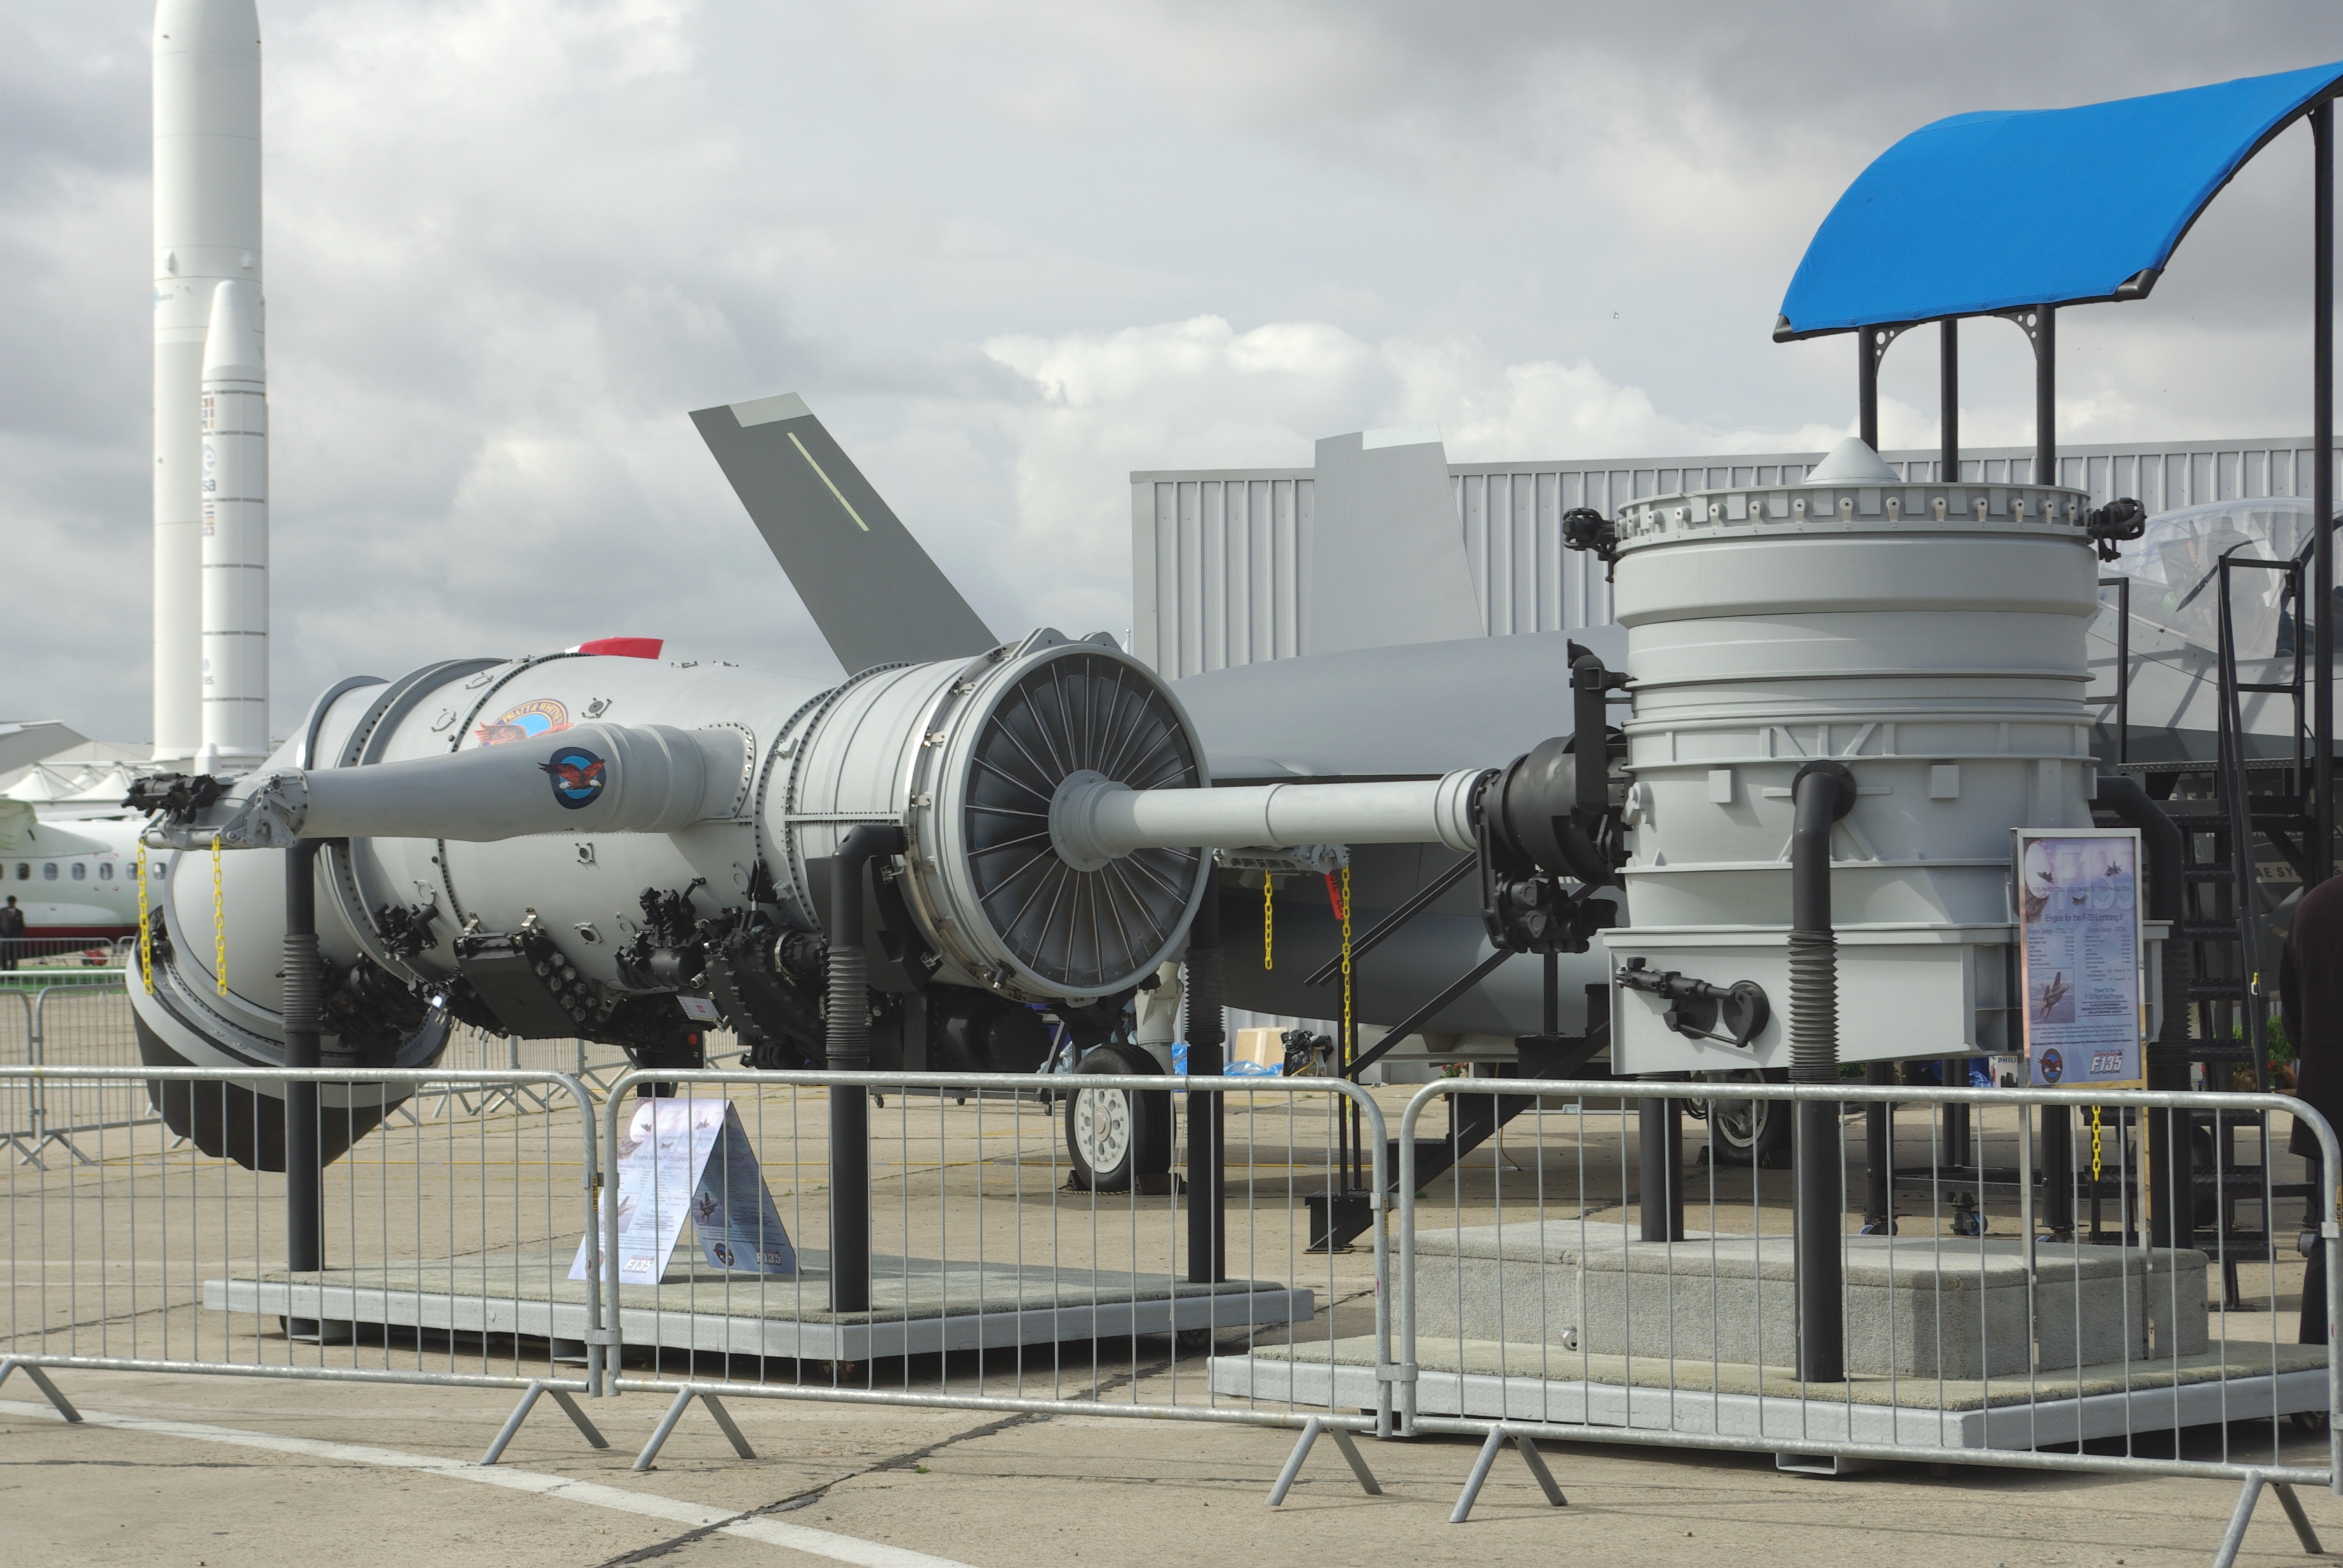 The Pratt & Whitney F135 engine with Rolls-Royce LiftSystem, including roll posts, and rear vectoring nozzle for the F-35B, at the 2007 Paris Air Show